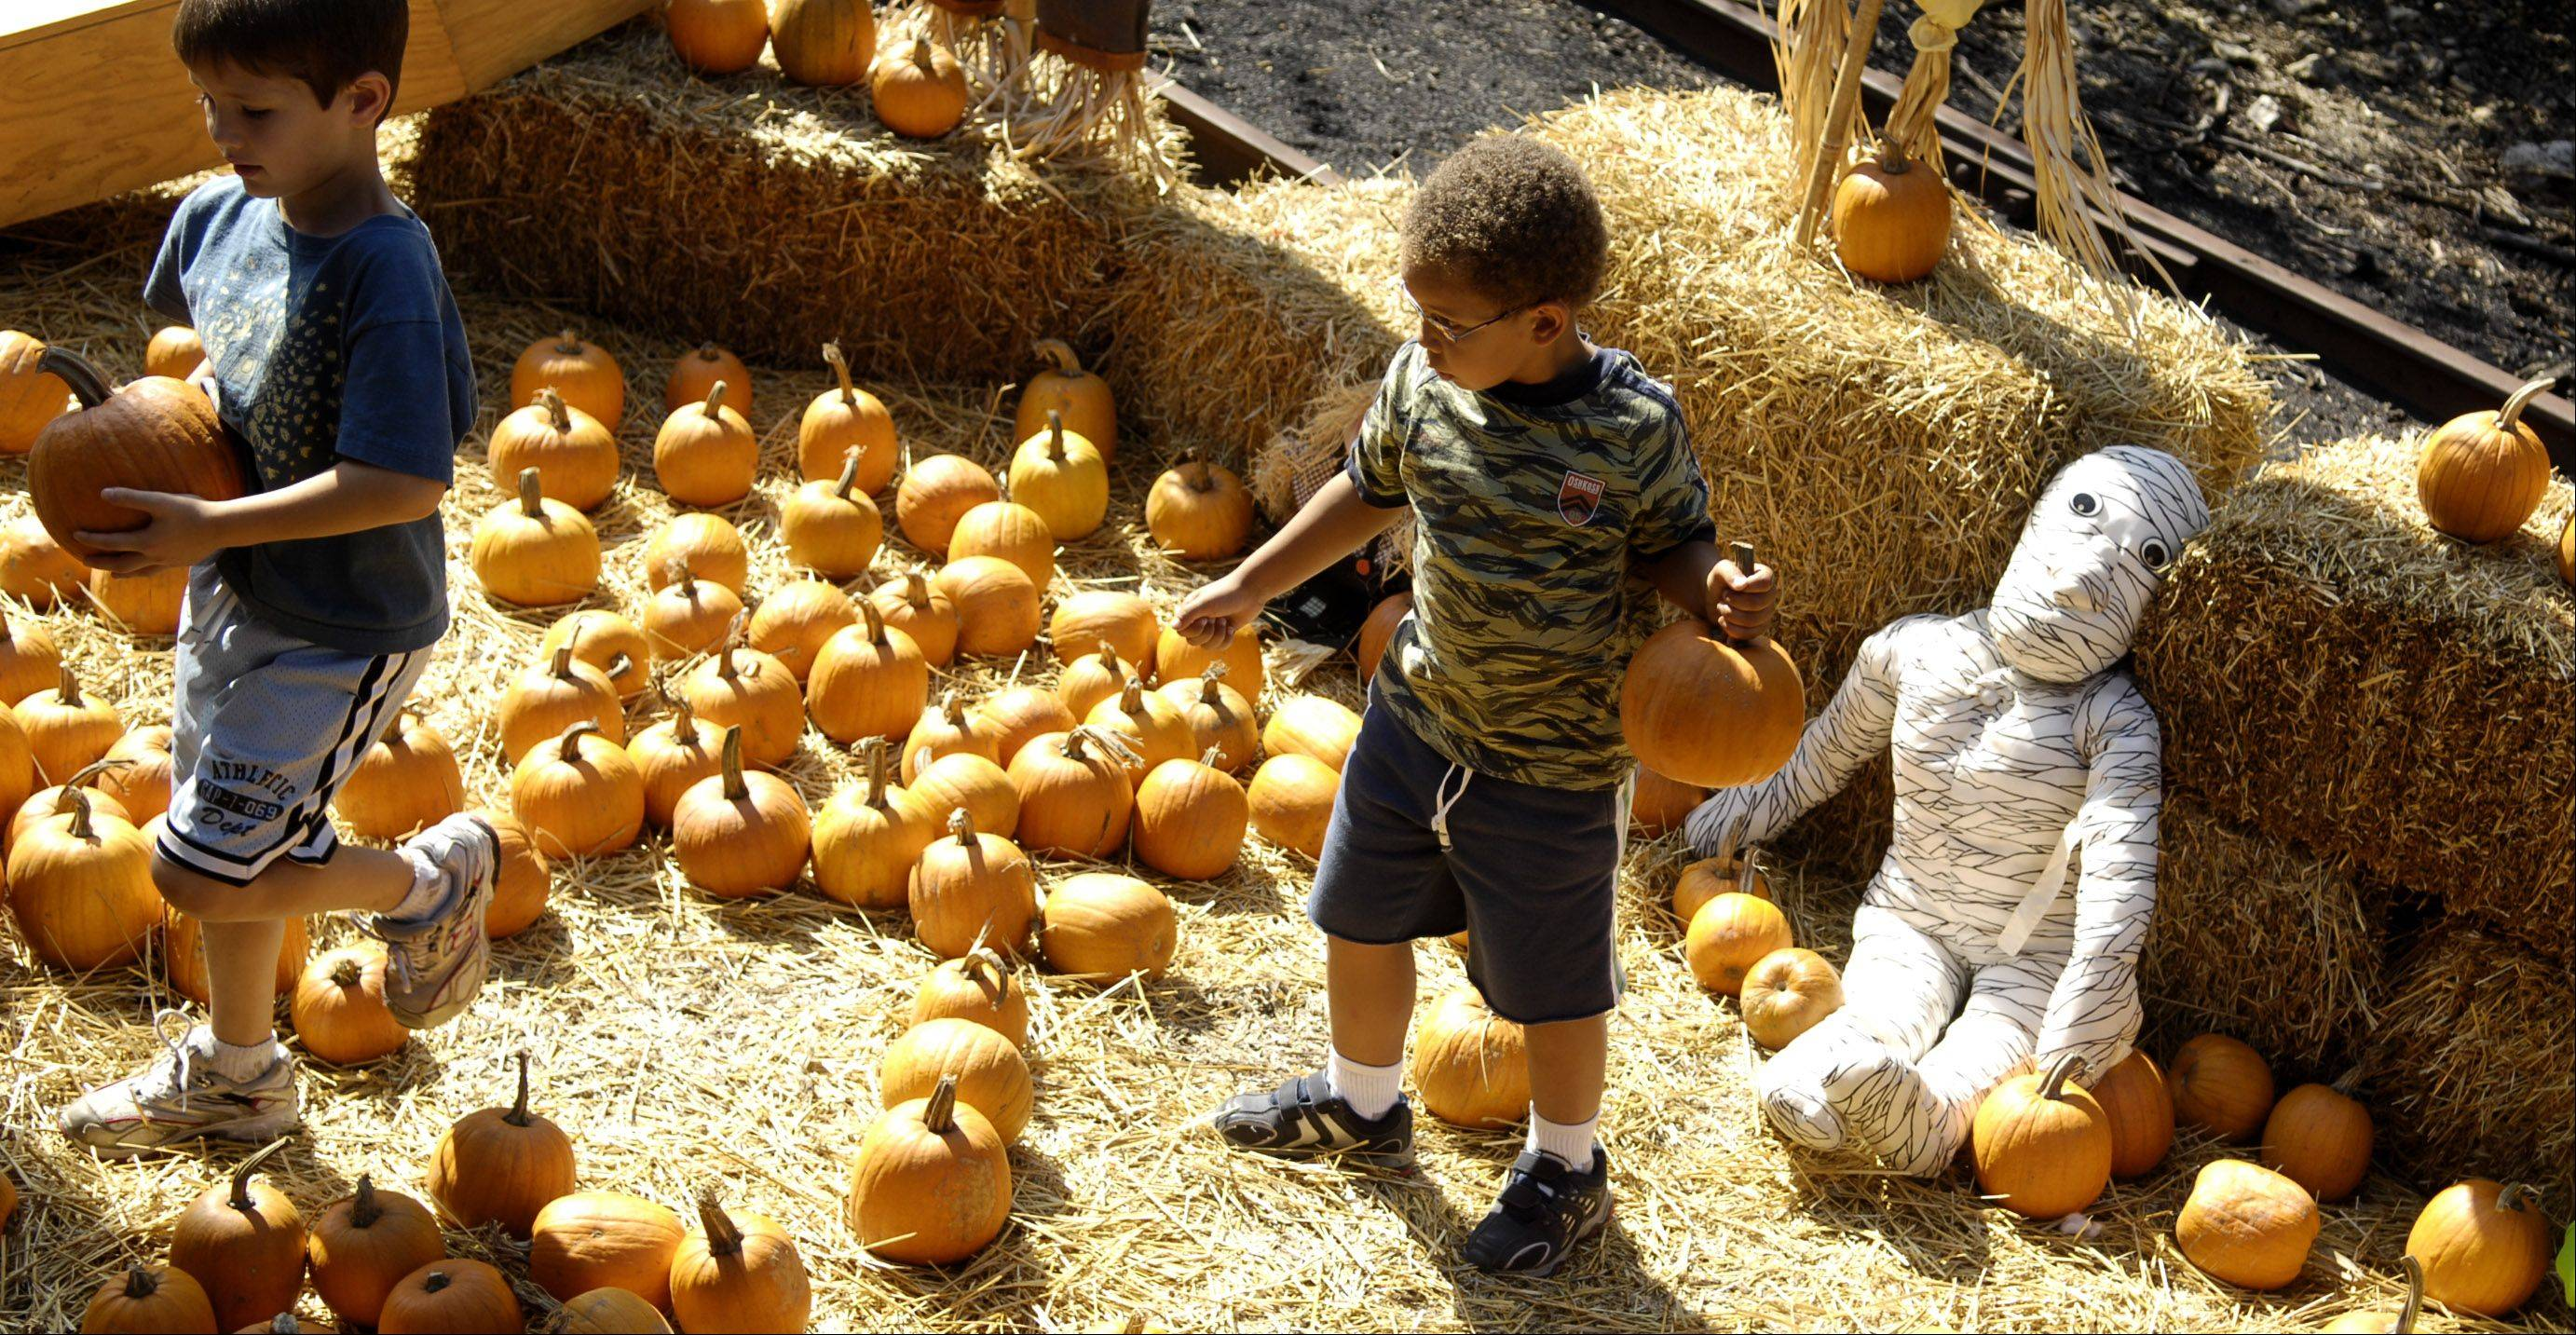 Popular with families, the Fox River Trolley Museum's Pumpkin Trolley offers a ride to the pumpkin patch.